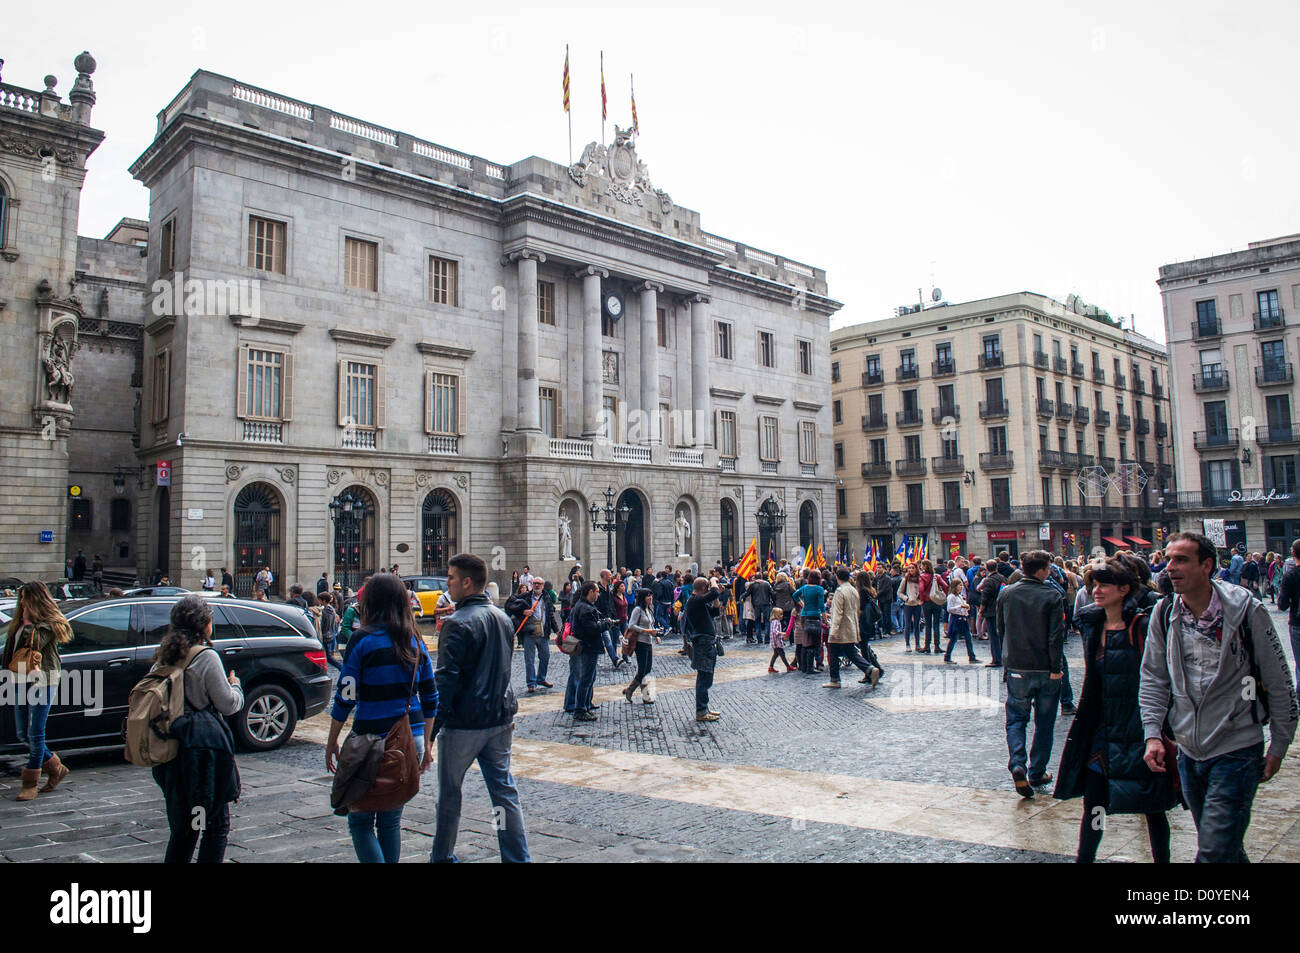 Catalonia political rally with flag carrying participants in front of a government building in Barcelona, Spain. - Stock Image